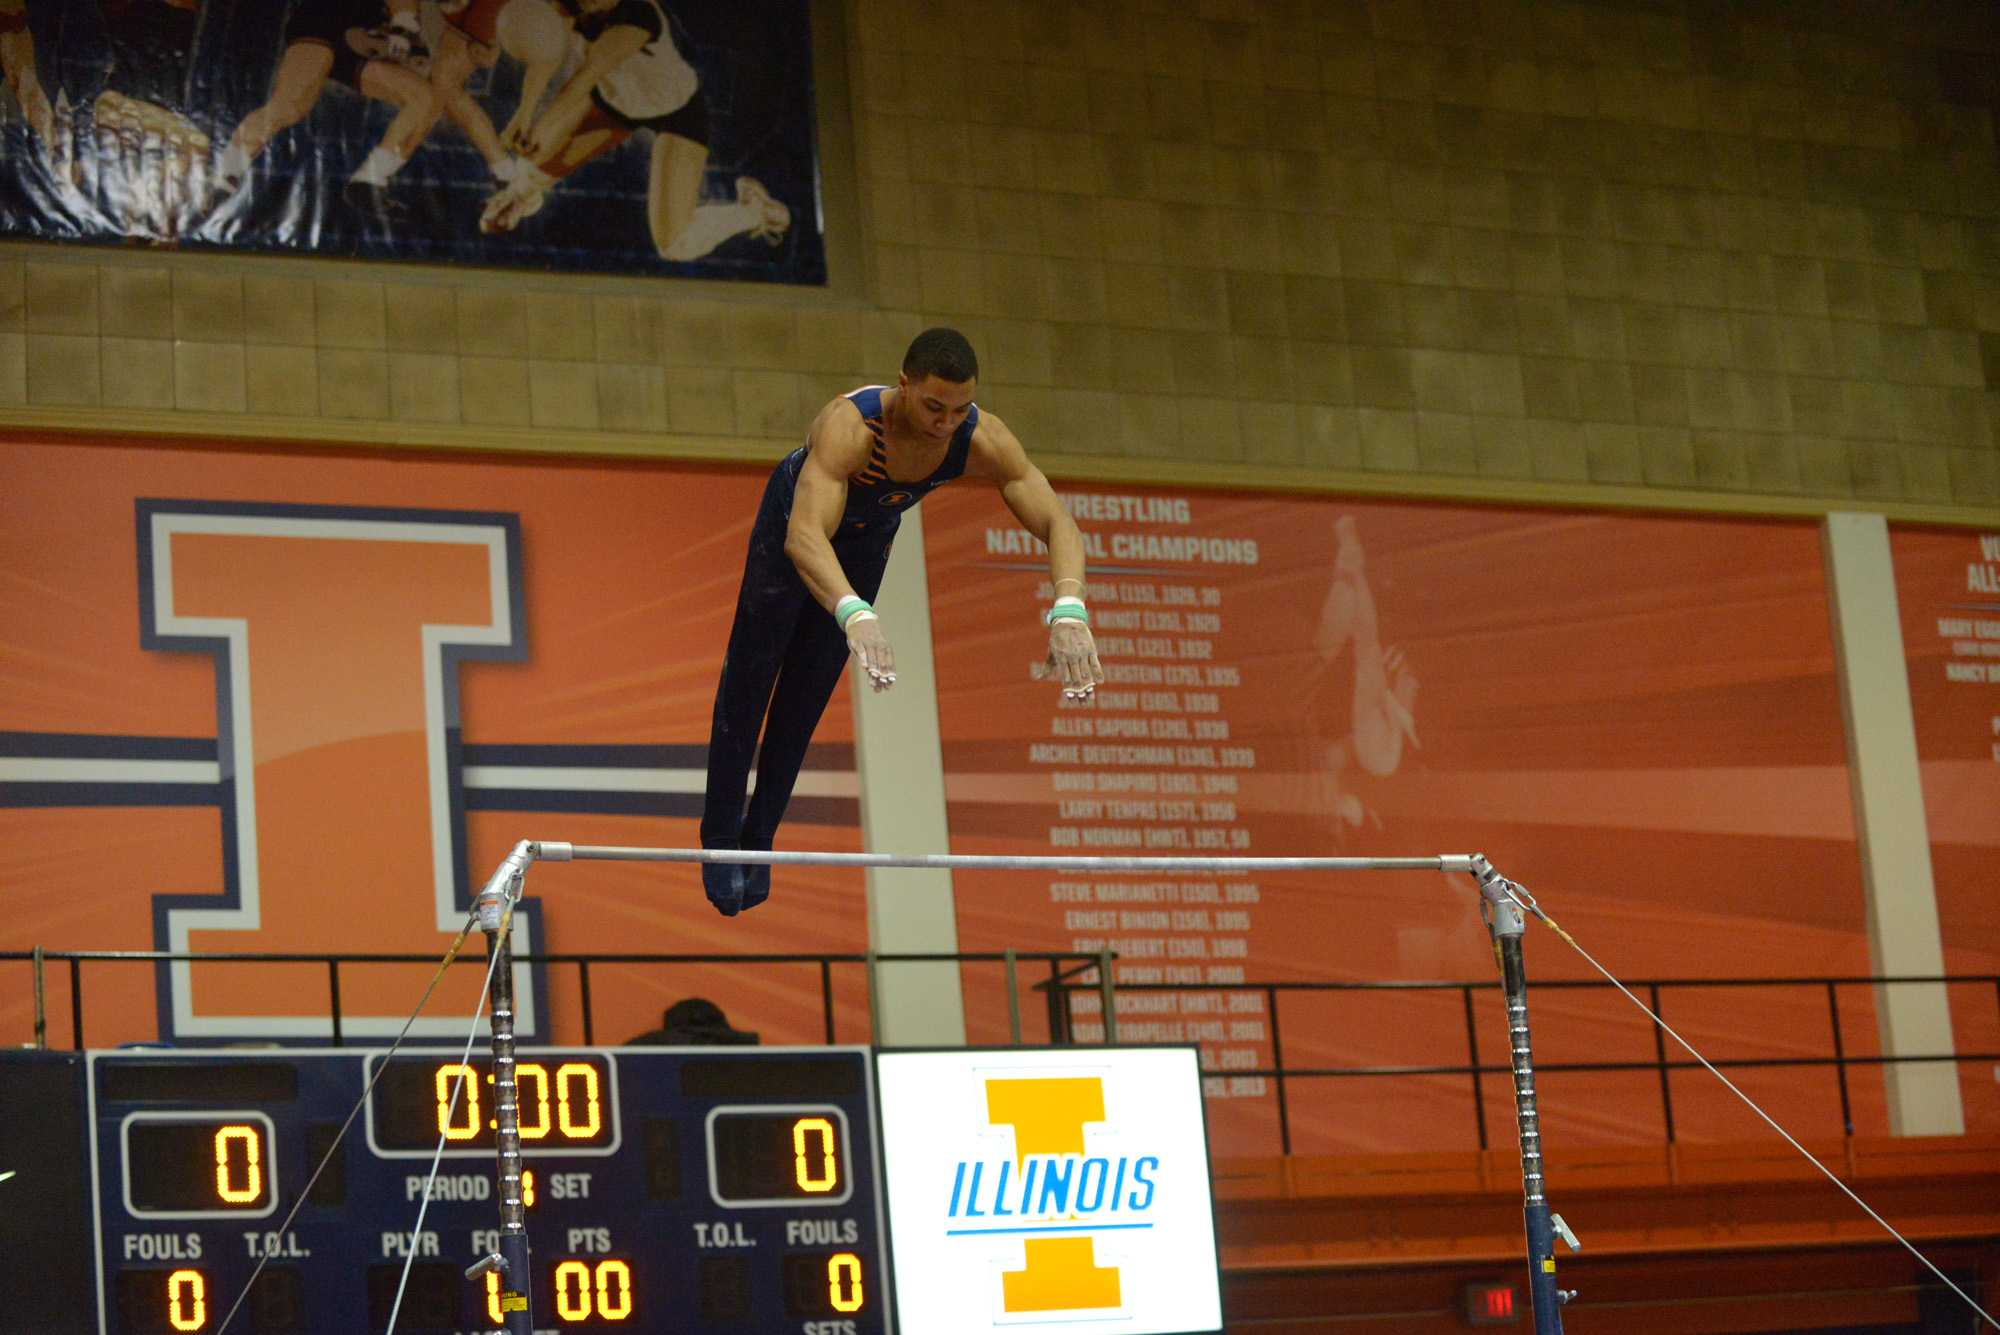 Chandler Eggleston performs the high bar routine against Ohio State at Huff Hall on Sunday, Jan. 26rd, 2014.